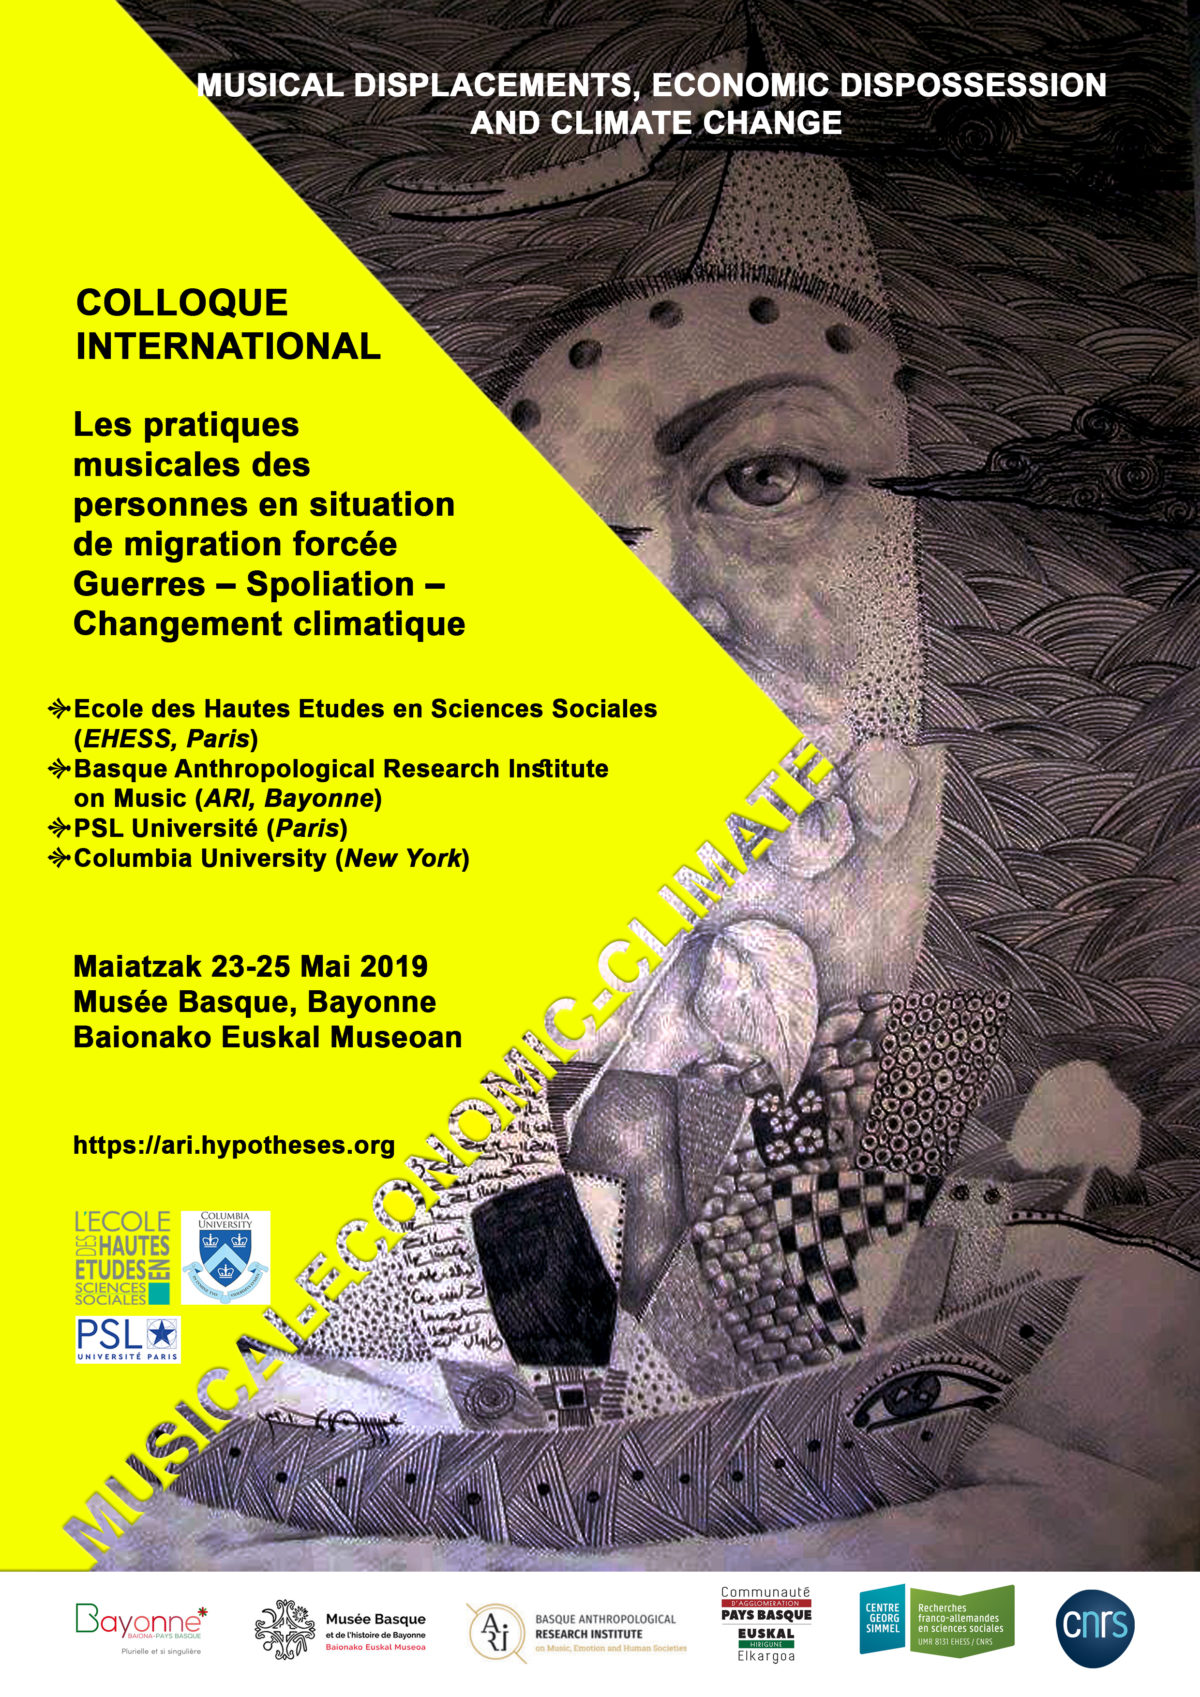 Musical Displacements, Economic Dispossession and Climate Change Bayonne, du 23 au 25 mai 2019